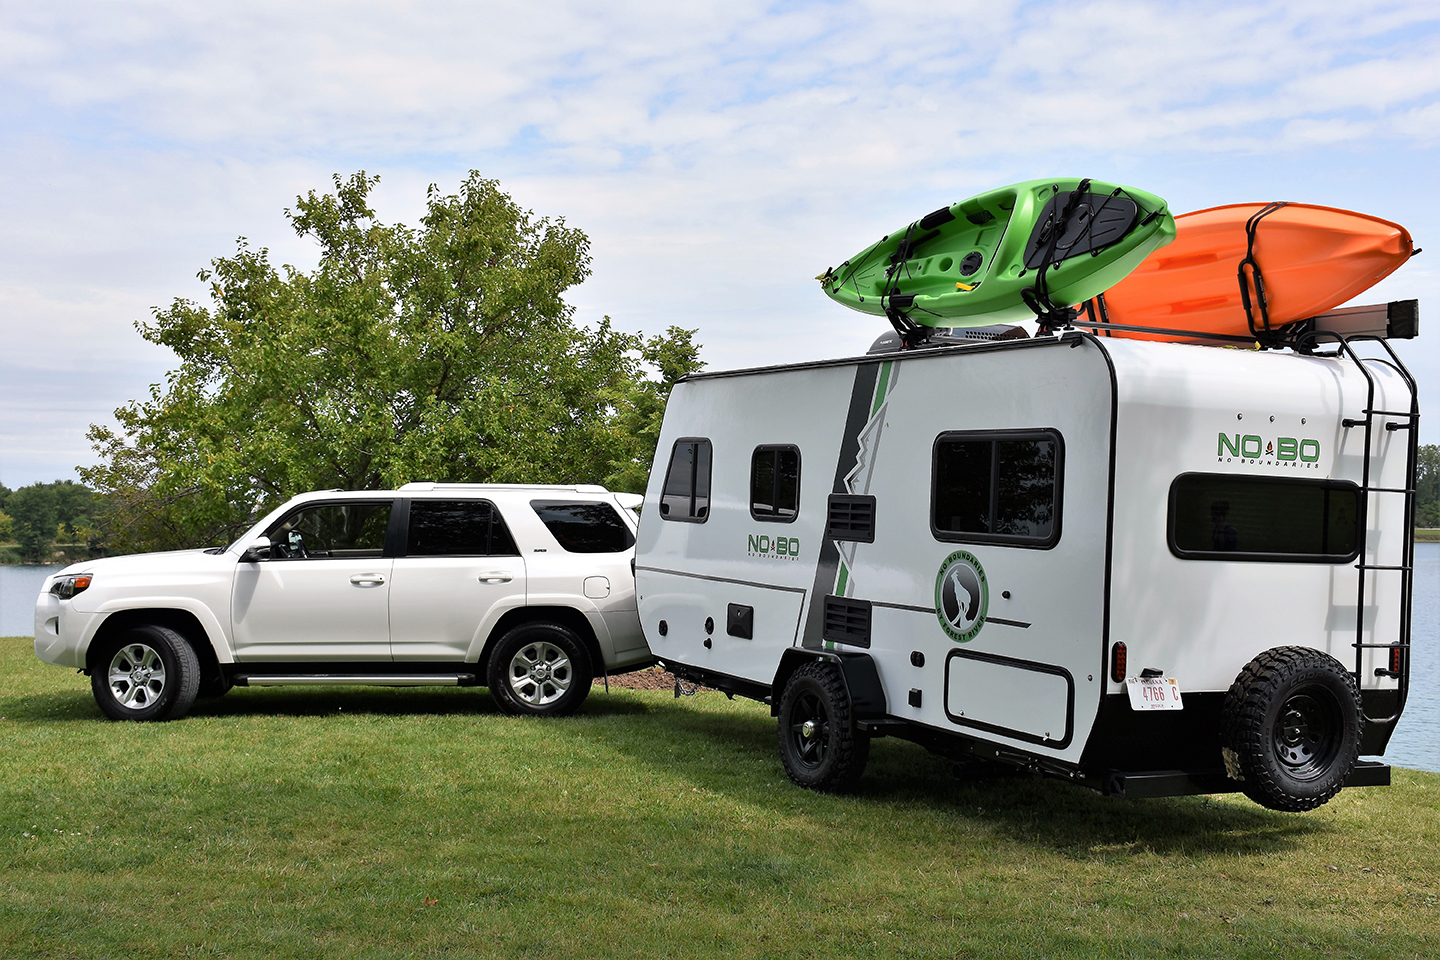 While most RVs requires a pickup truck to tow, some lightweight ones can be towed by large SUVs